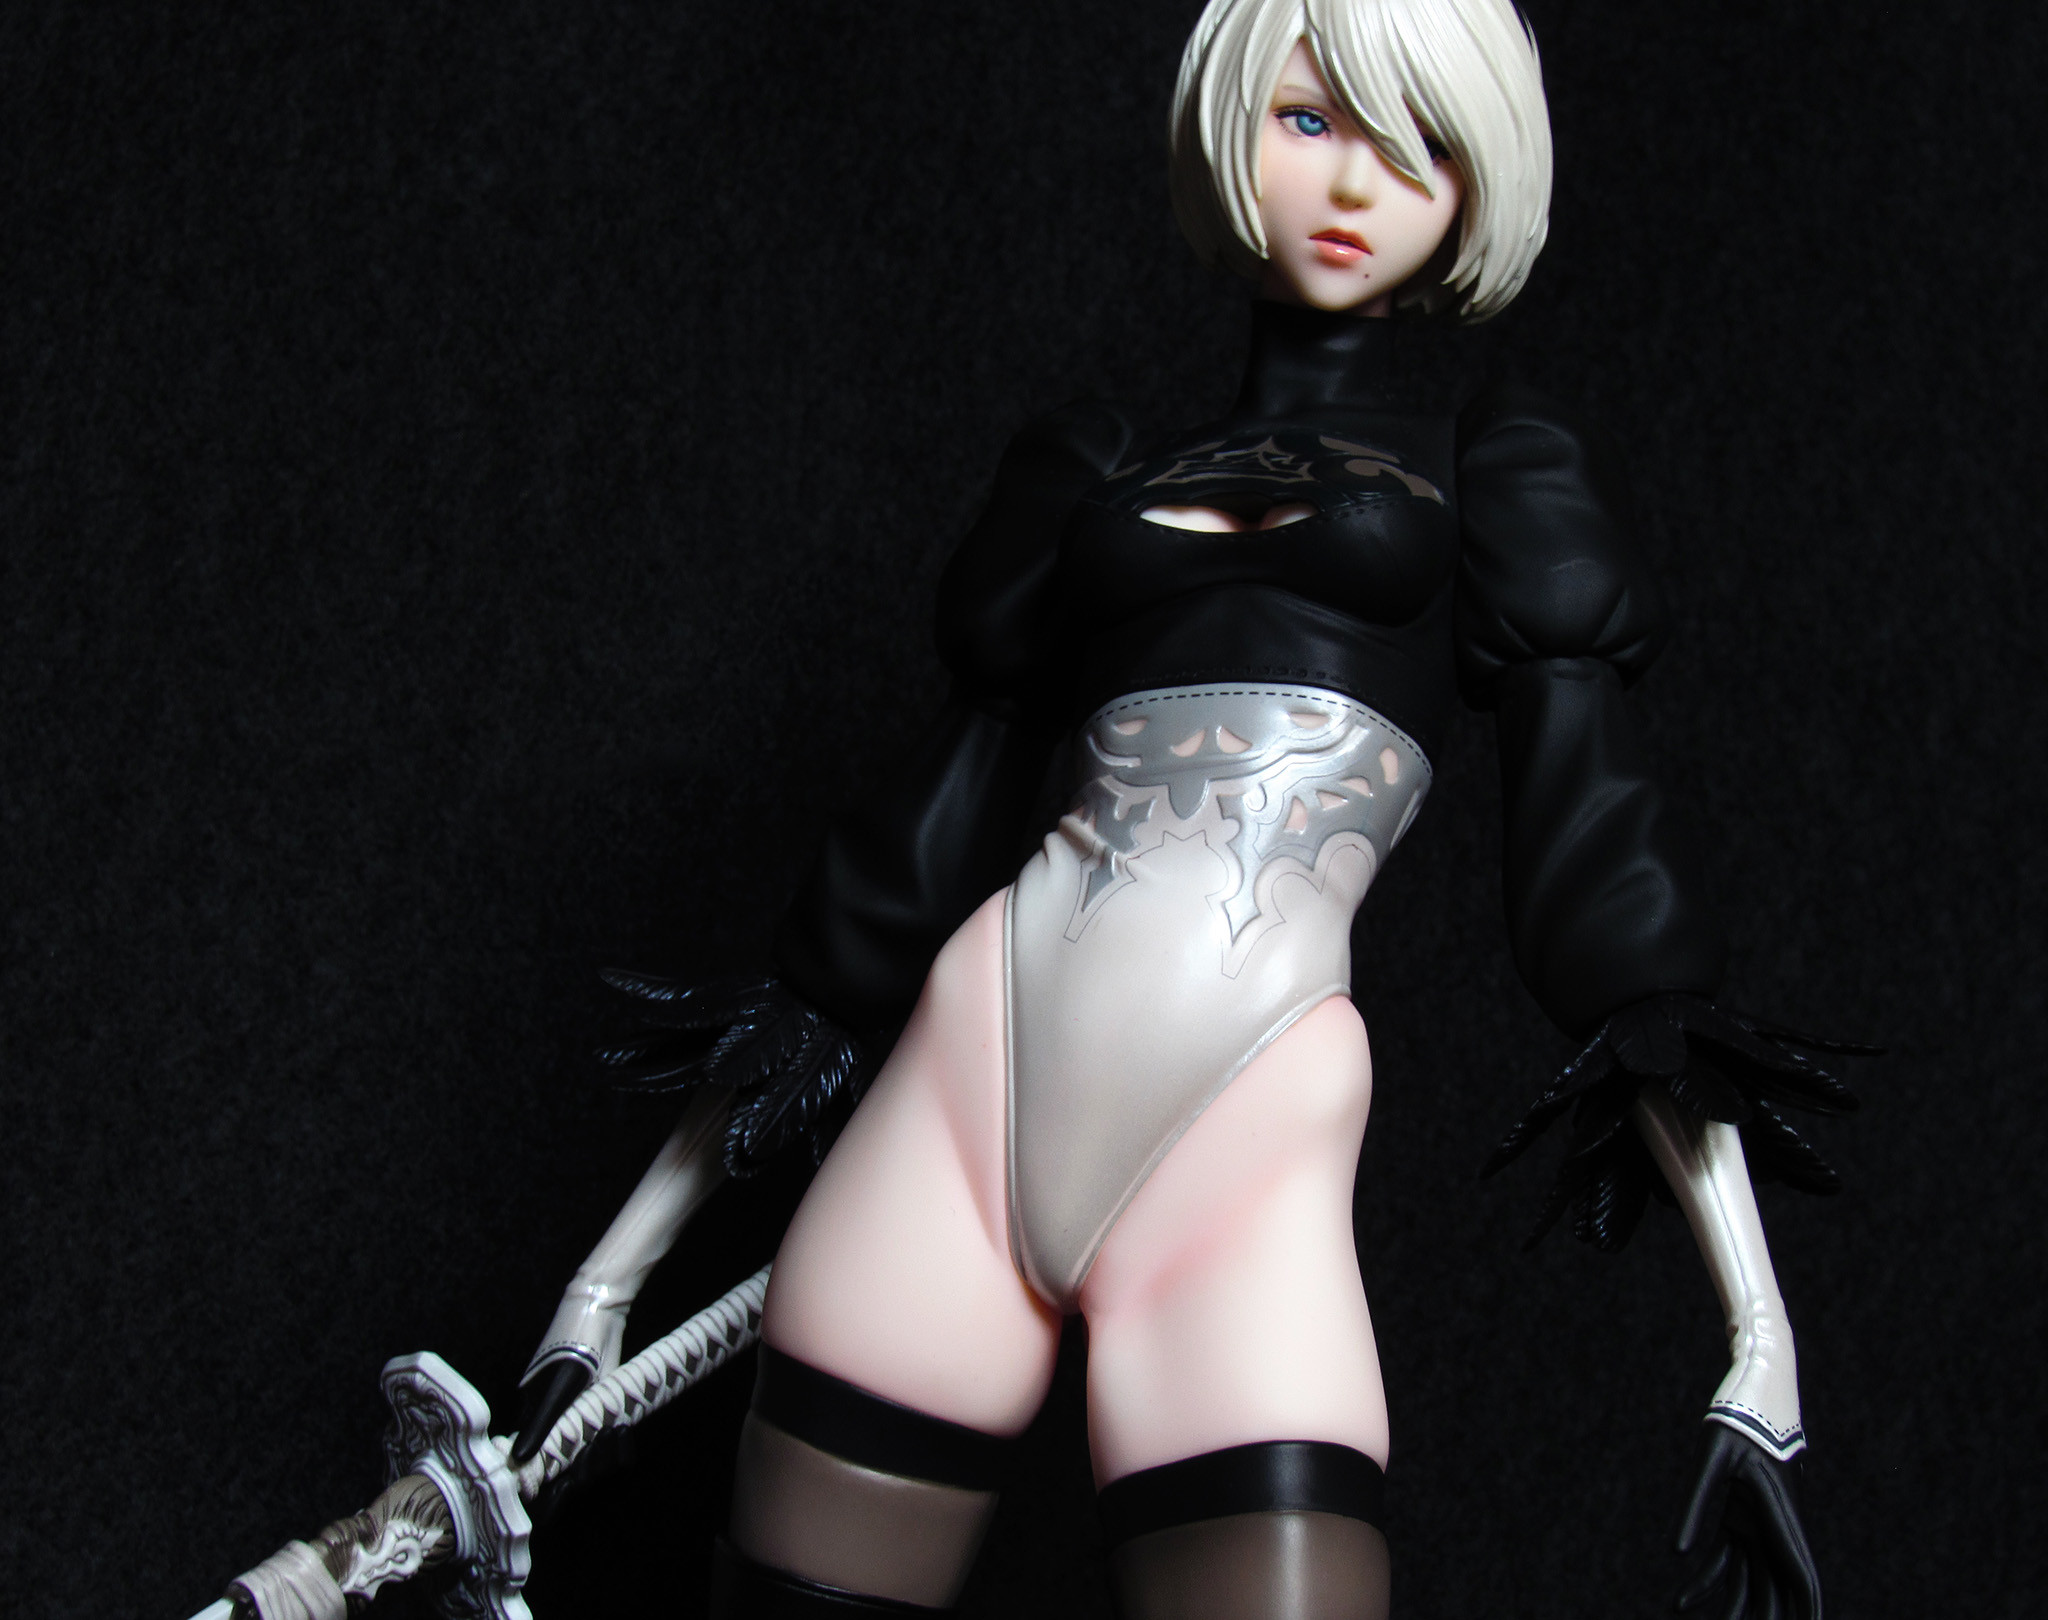 https://static.myfigurecollection.net/upload/pictures/2019/10/14/2314707.jpeg